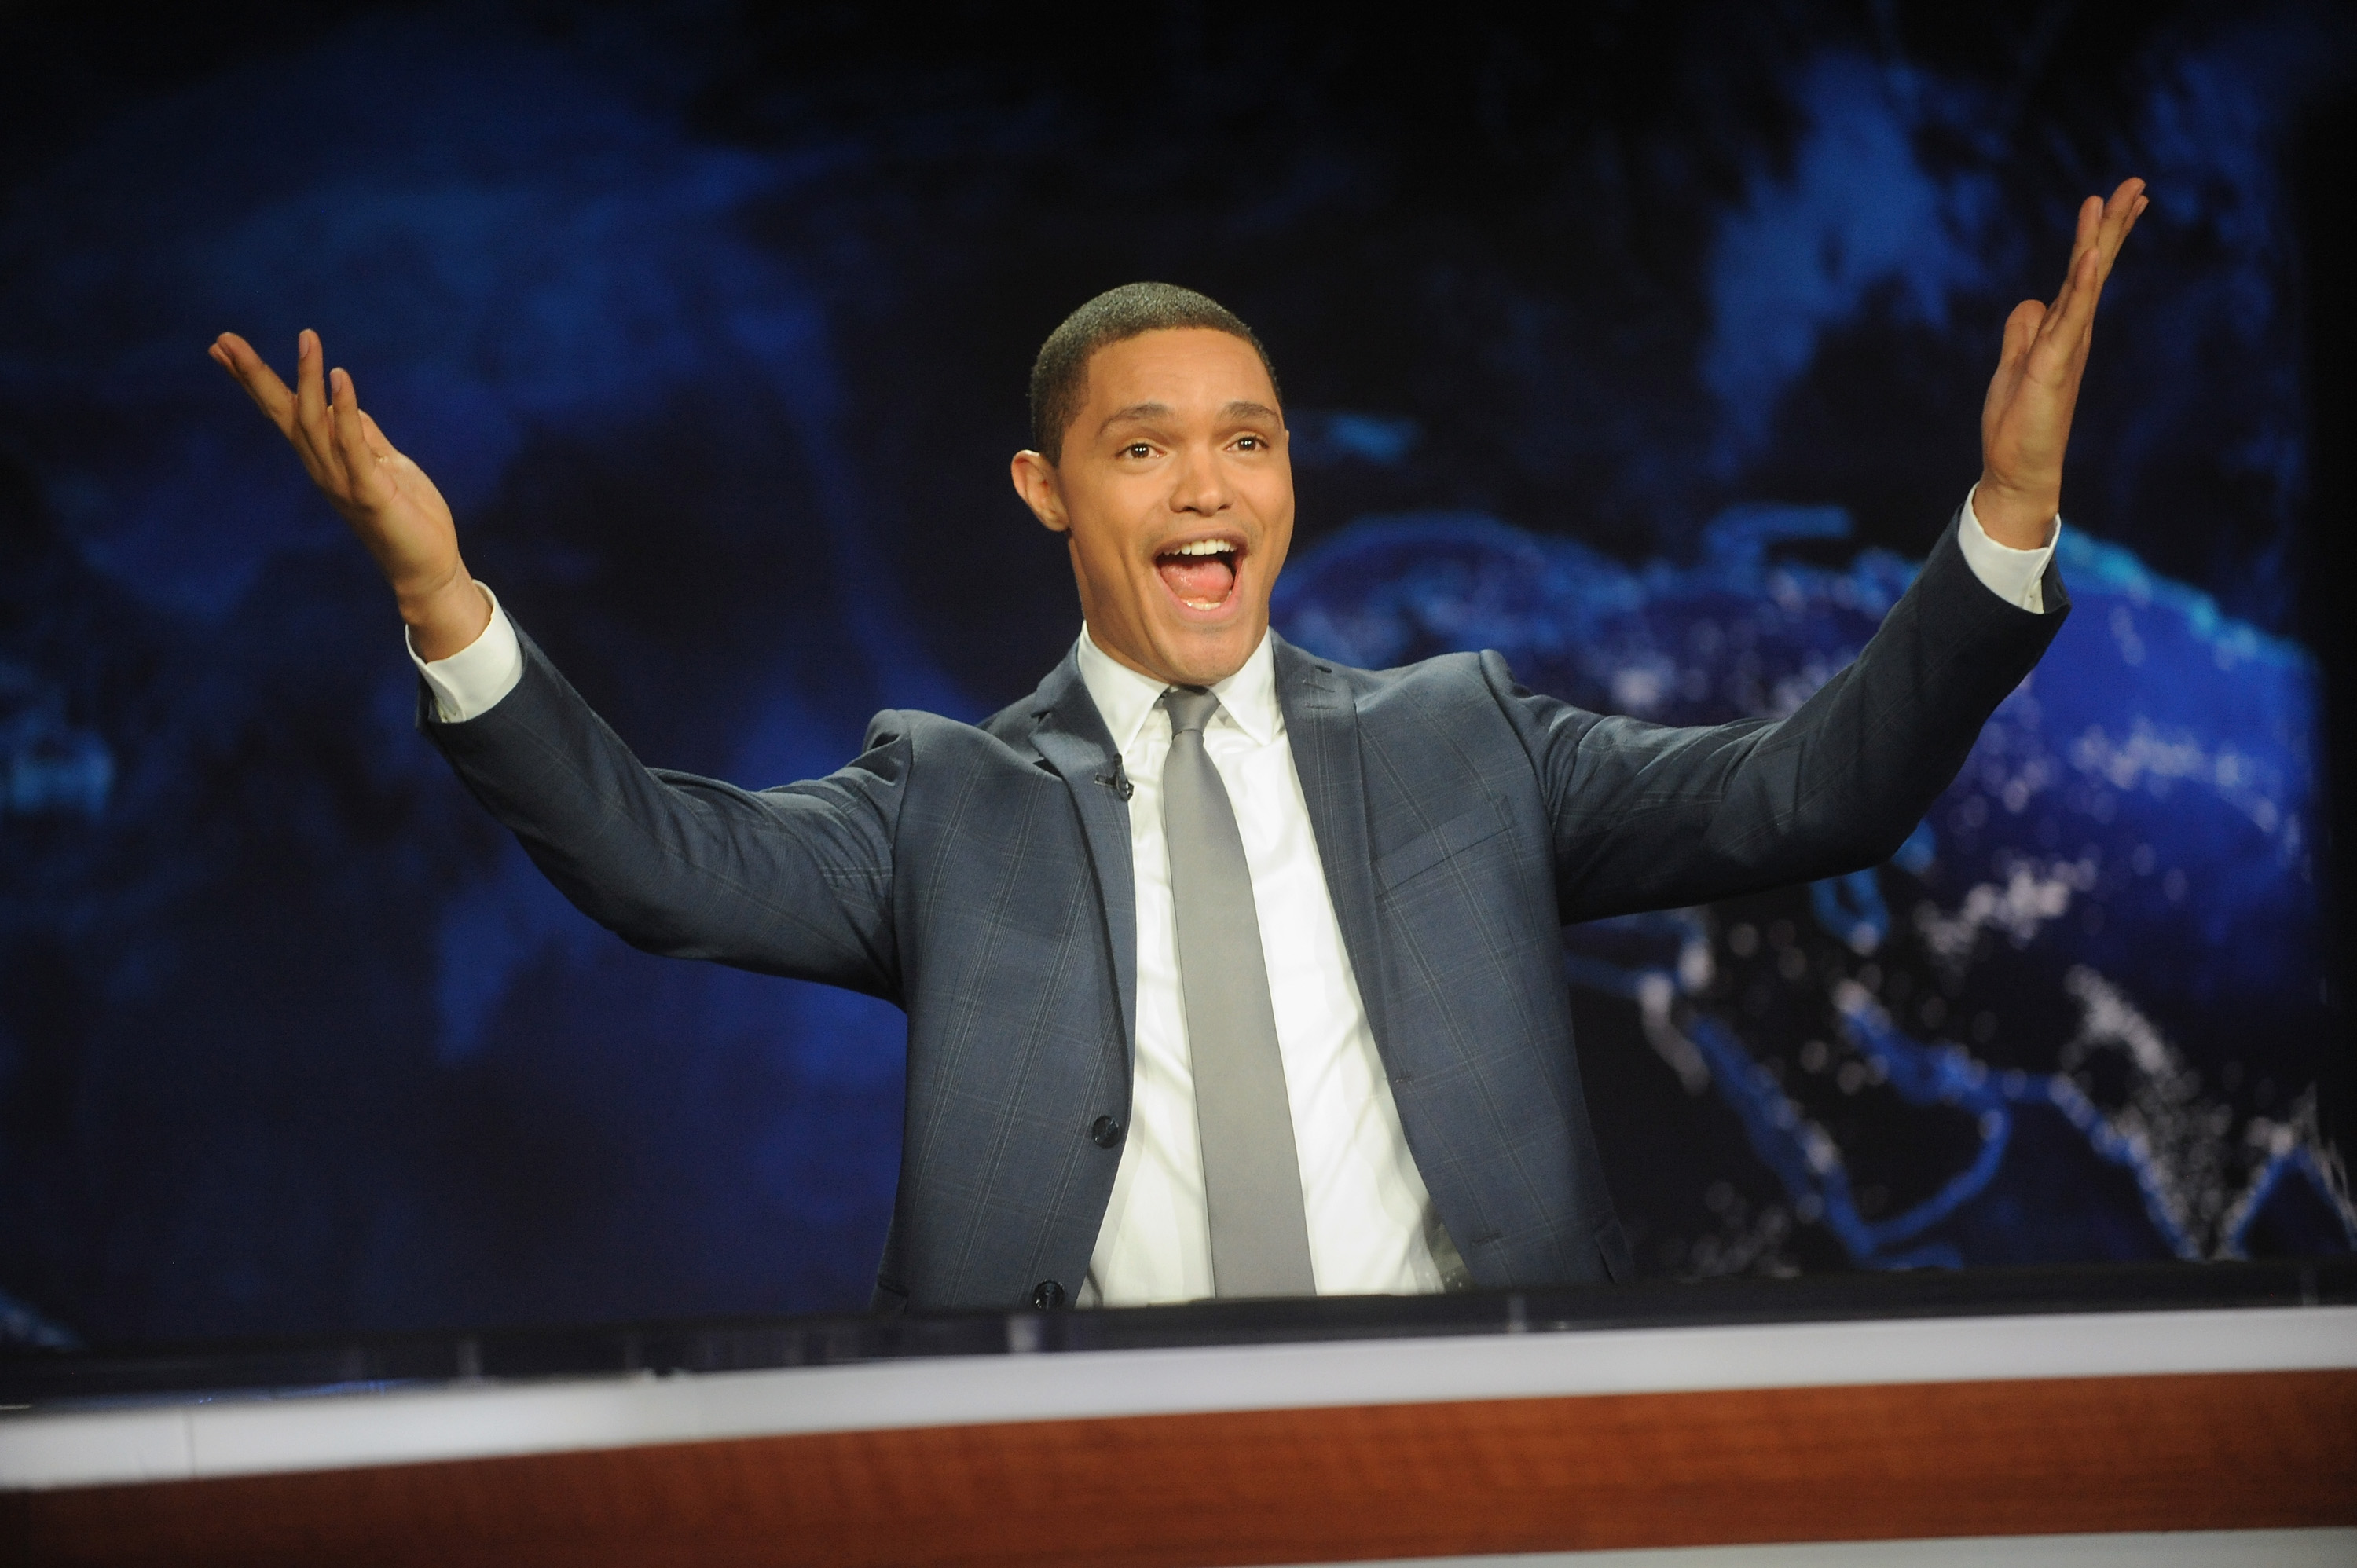 Trevor Noah hosts the The Daily Show with Trevor Noah in New York City, on Sept. 28, 2015.